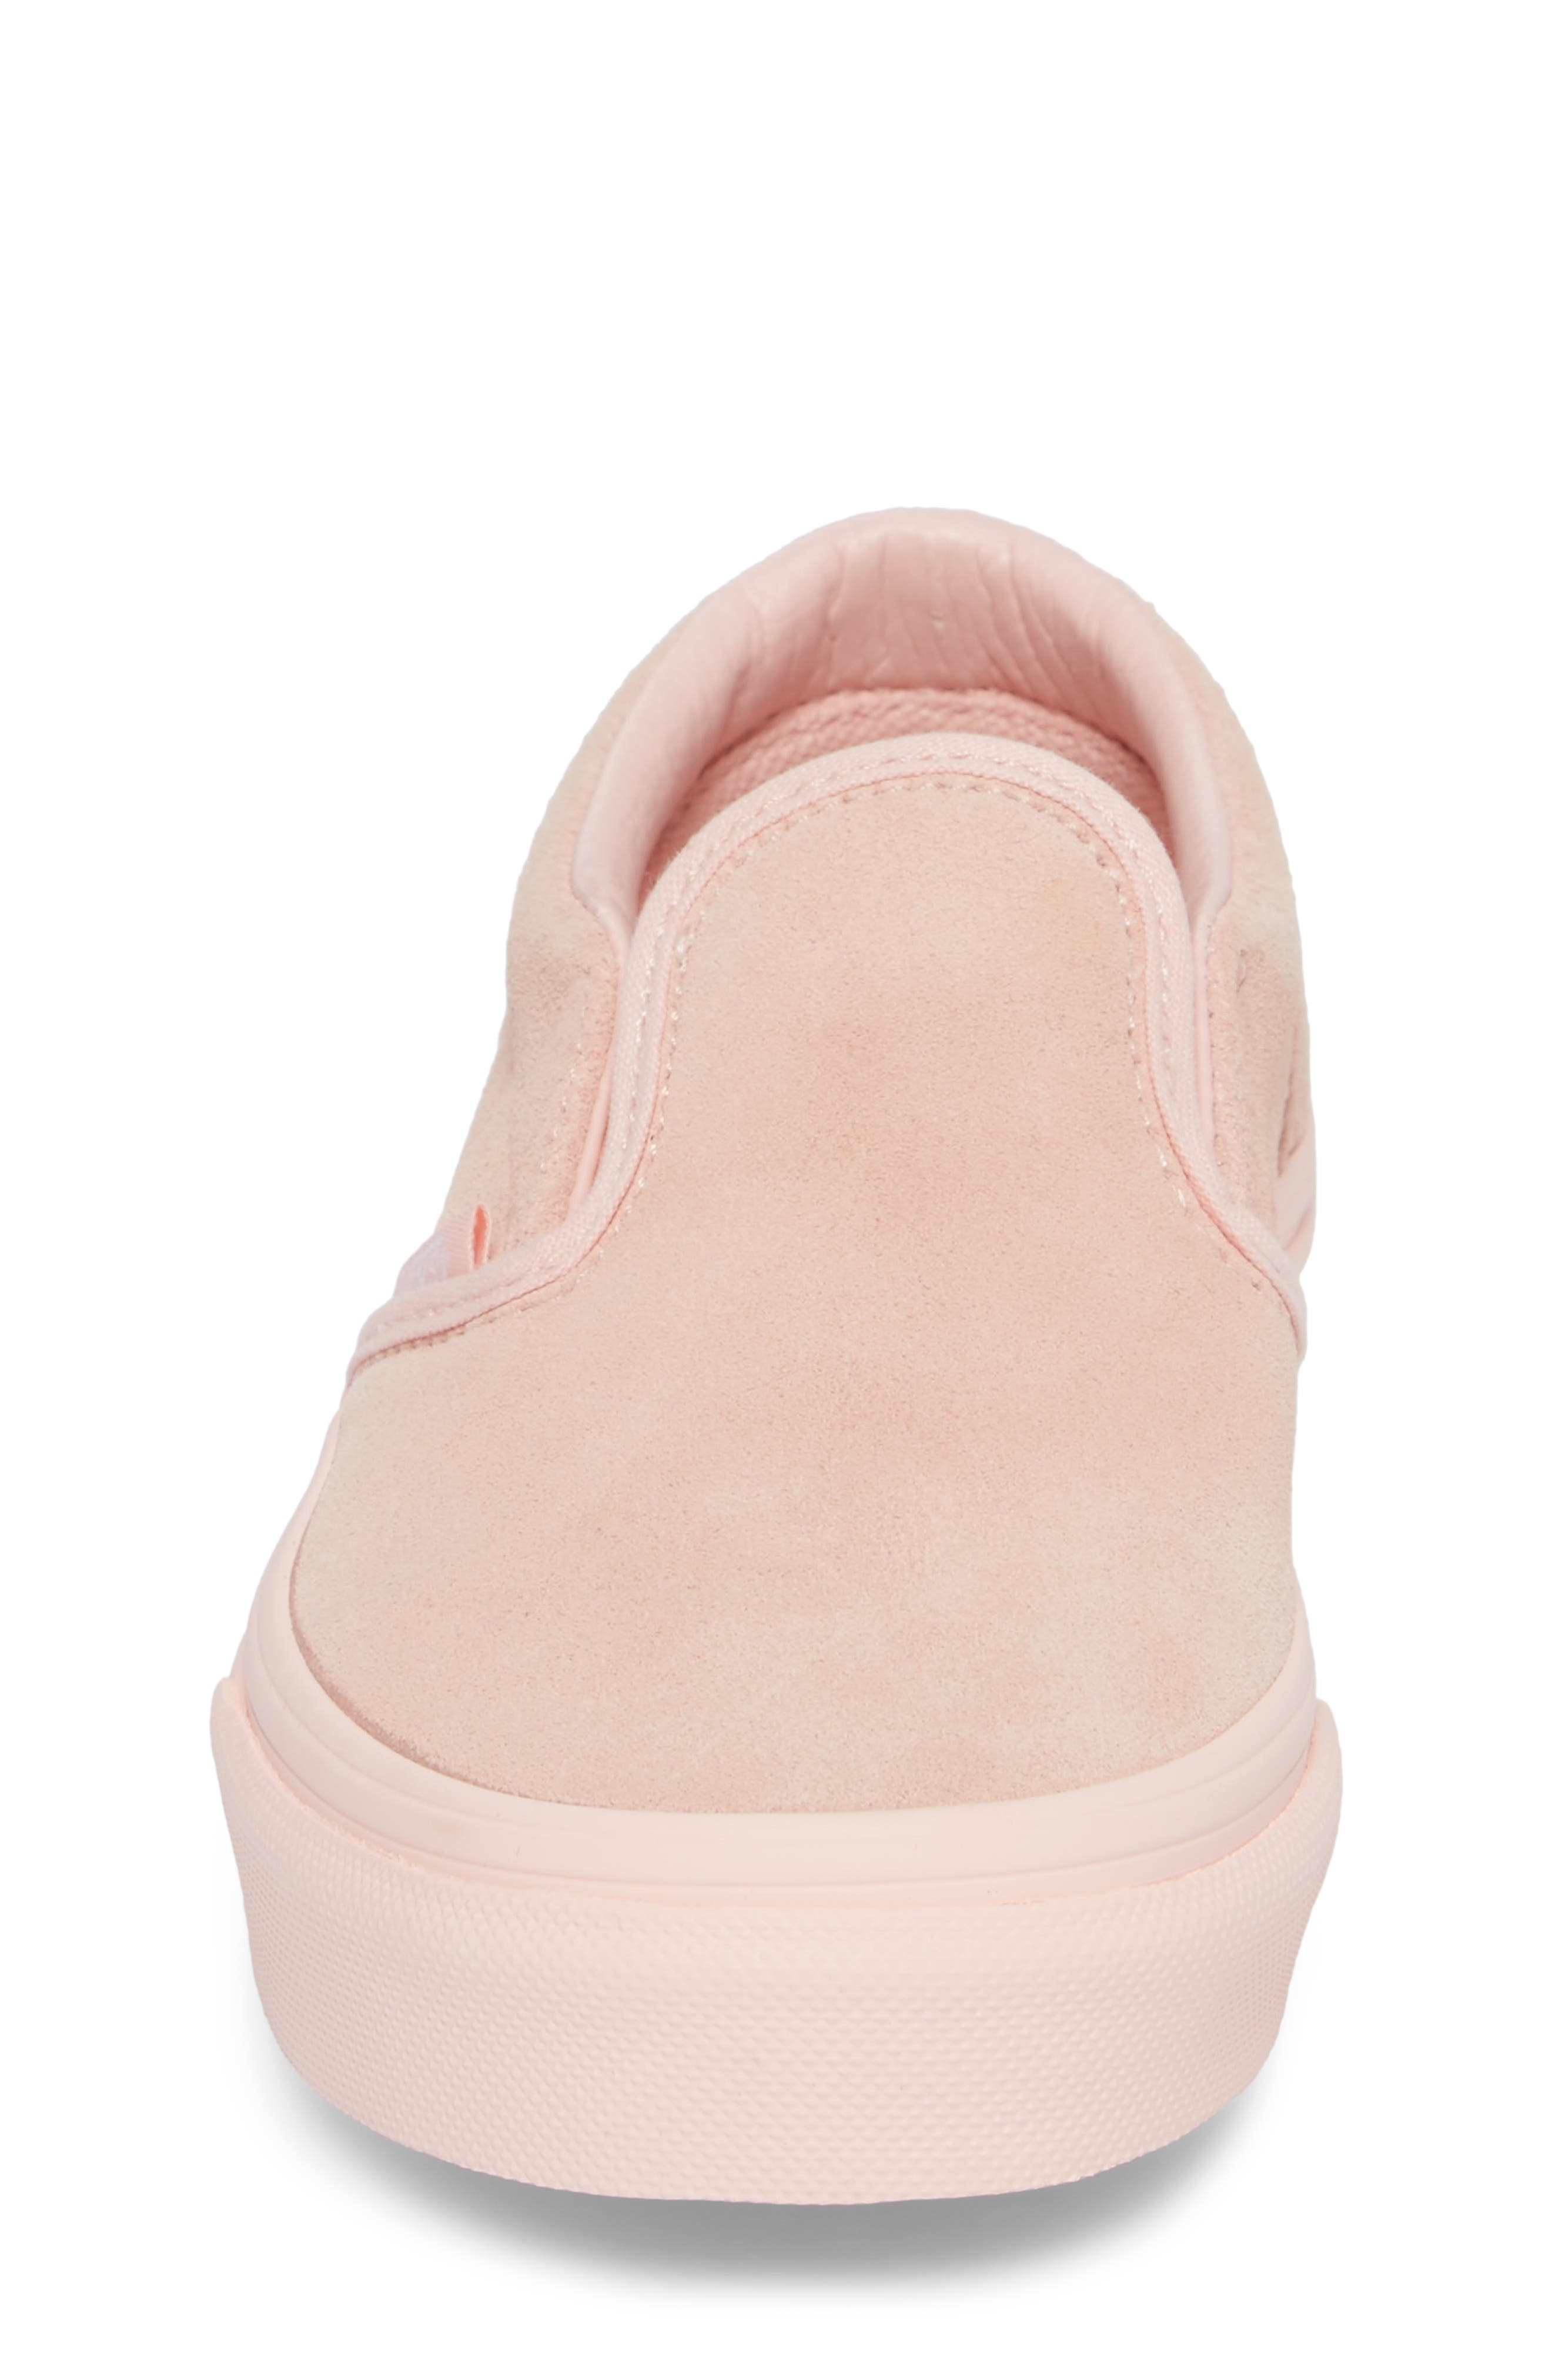 Classic Slip-On Sneaker,                             Alternate thumbnail 4, color,                             Suede Mono/ English Rose